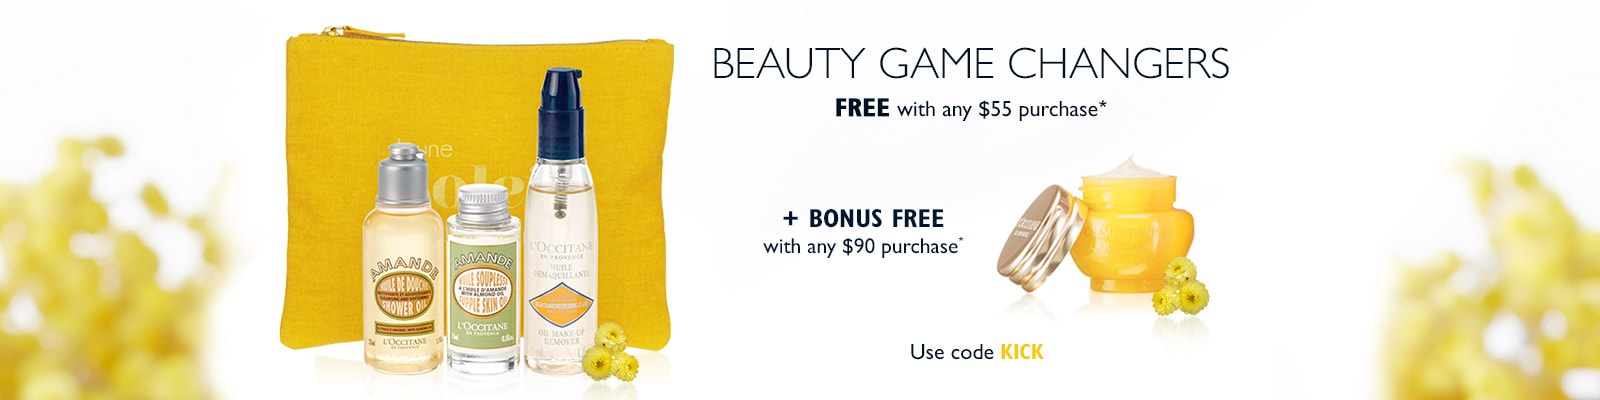 Receive a free 4-piece bonus gift with your $55 L'Occitane purchase